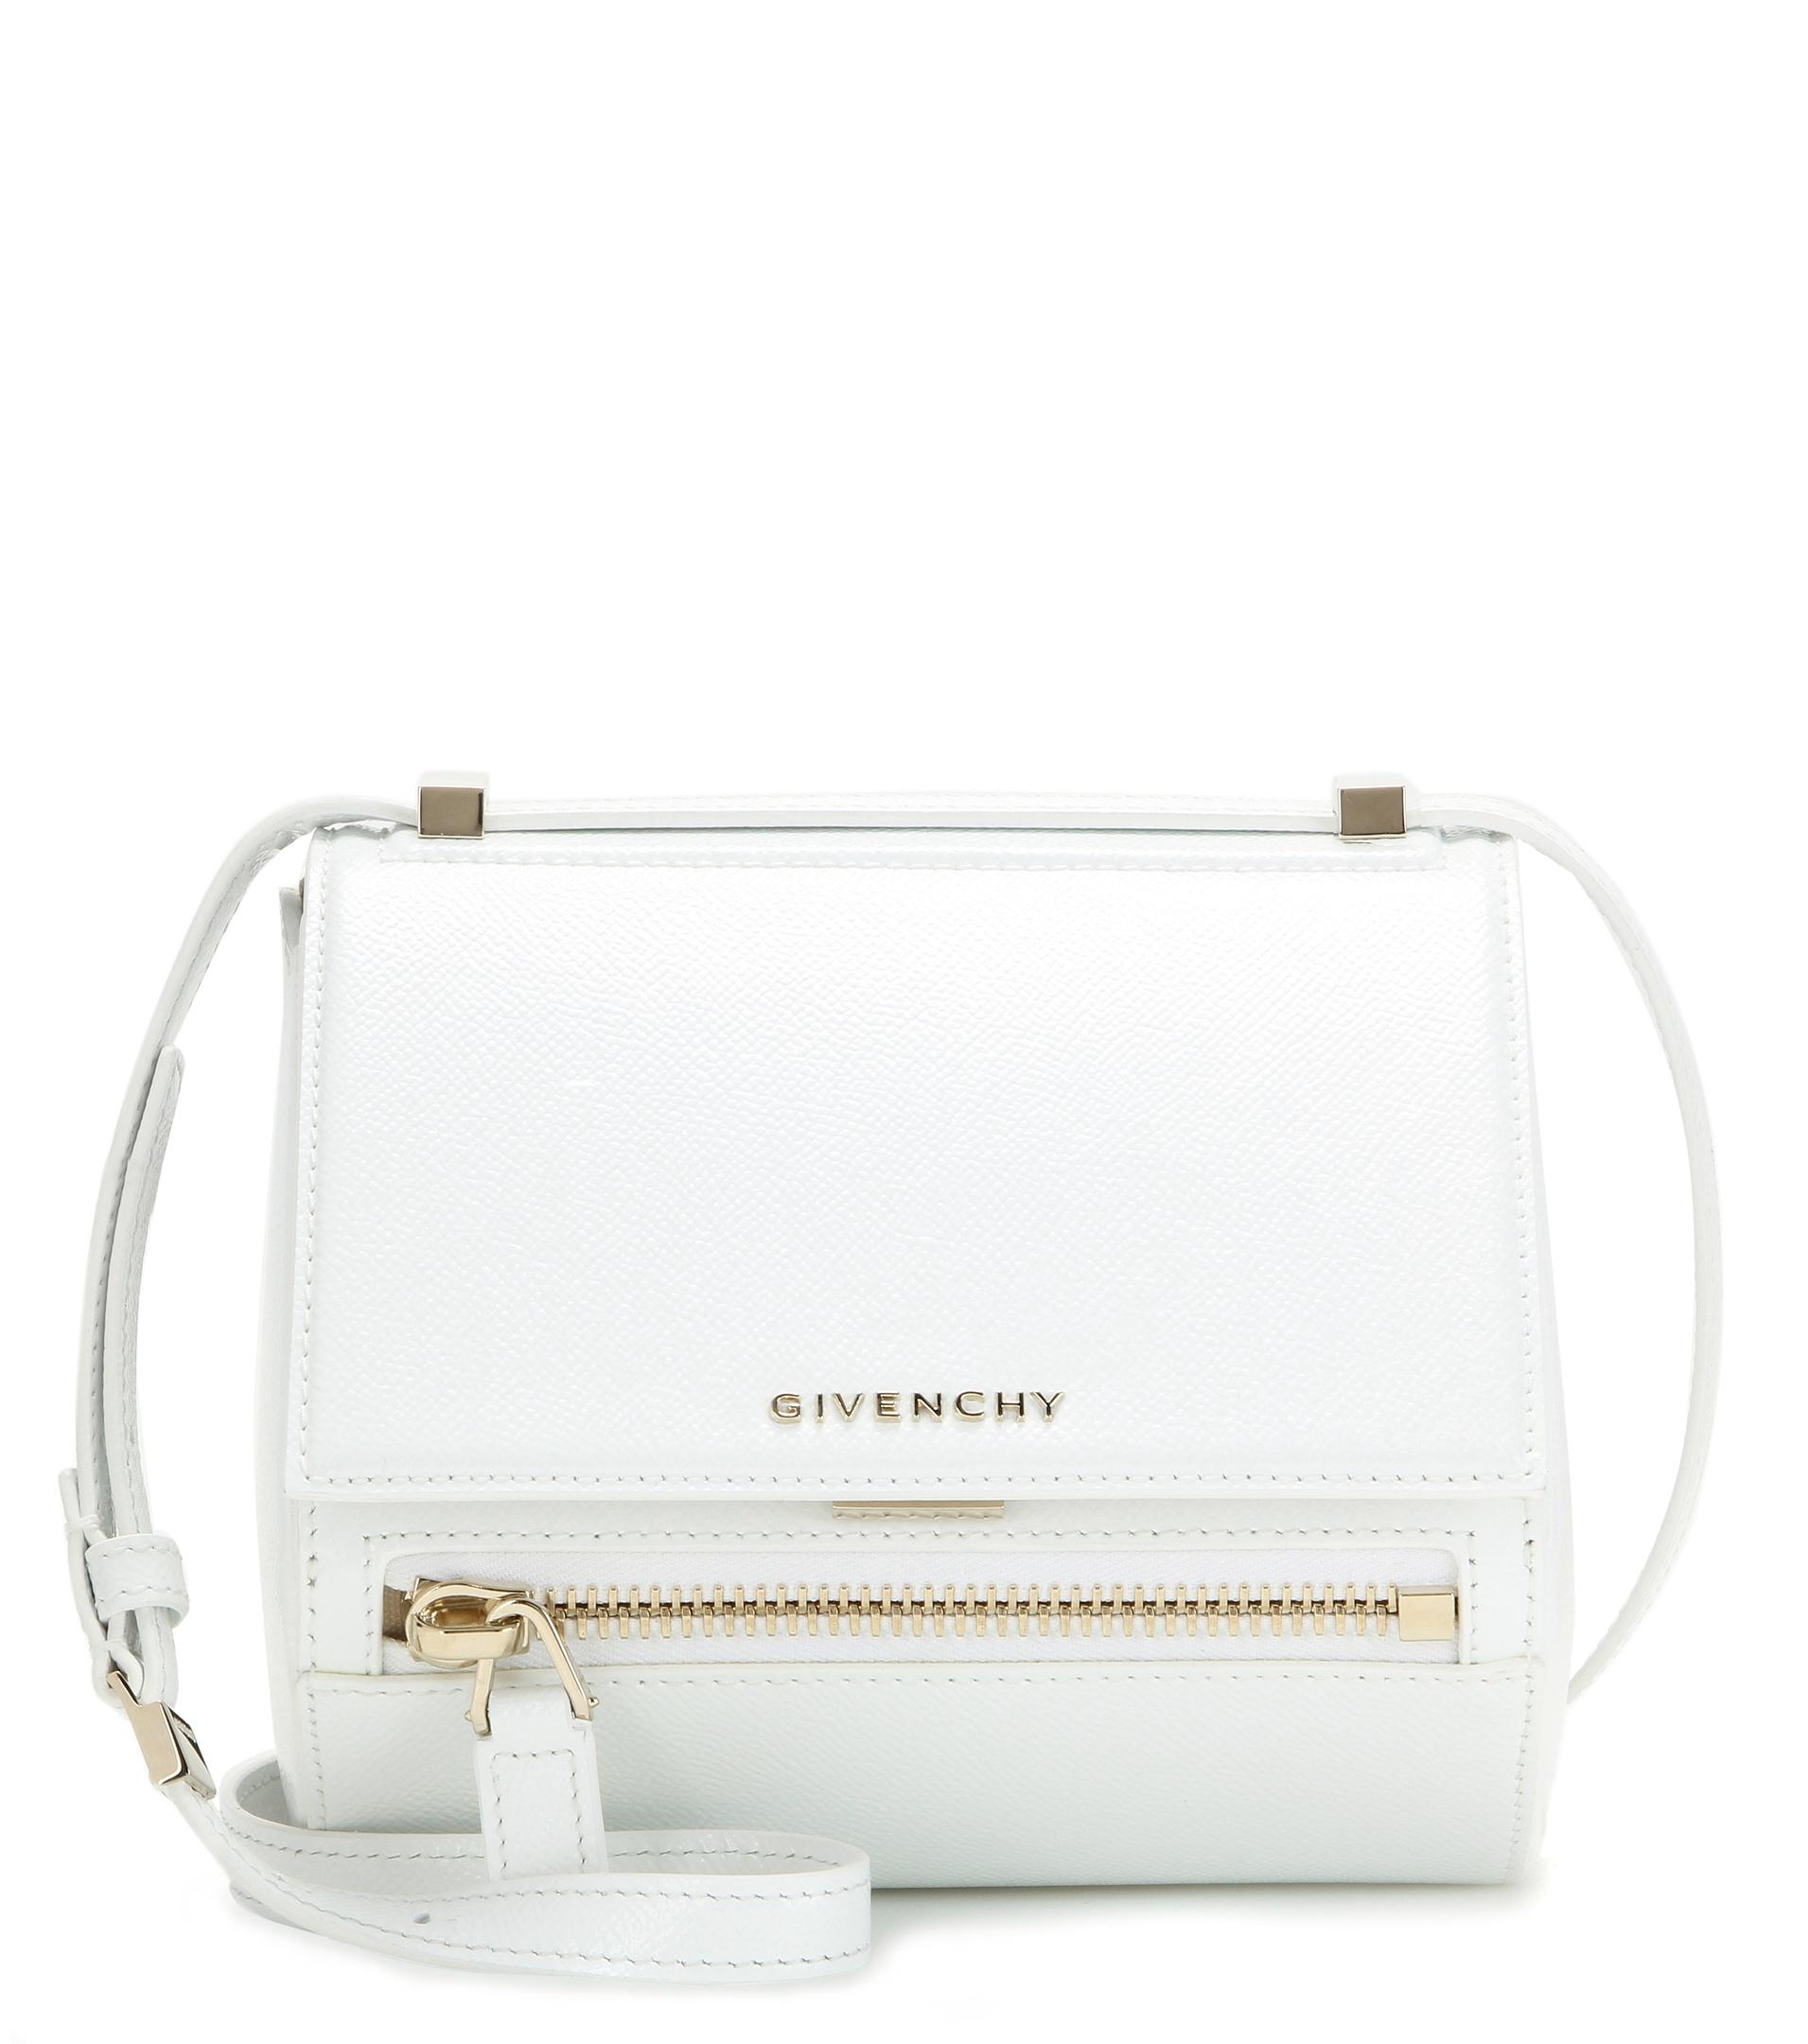 Lyst - Givenchy Pandora Box Mini Leather Shoulder Bag in White 74cc268b09e9f